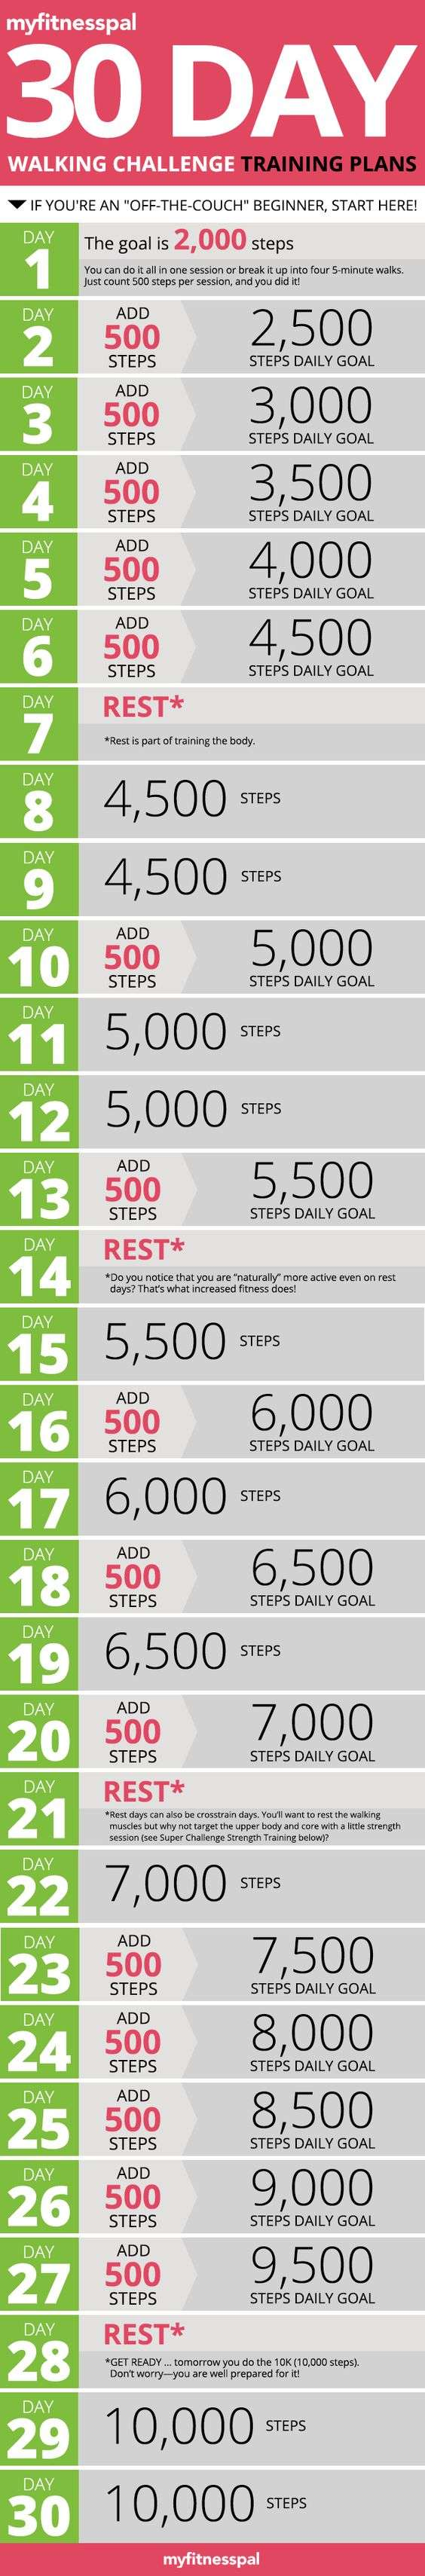 Walking For Weight Loss How To Lose 1 Pound Per Week